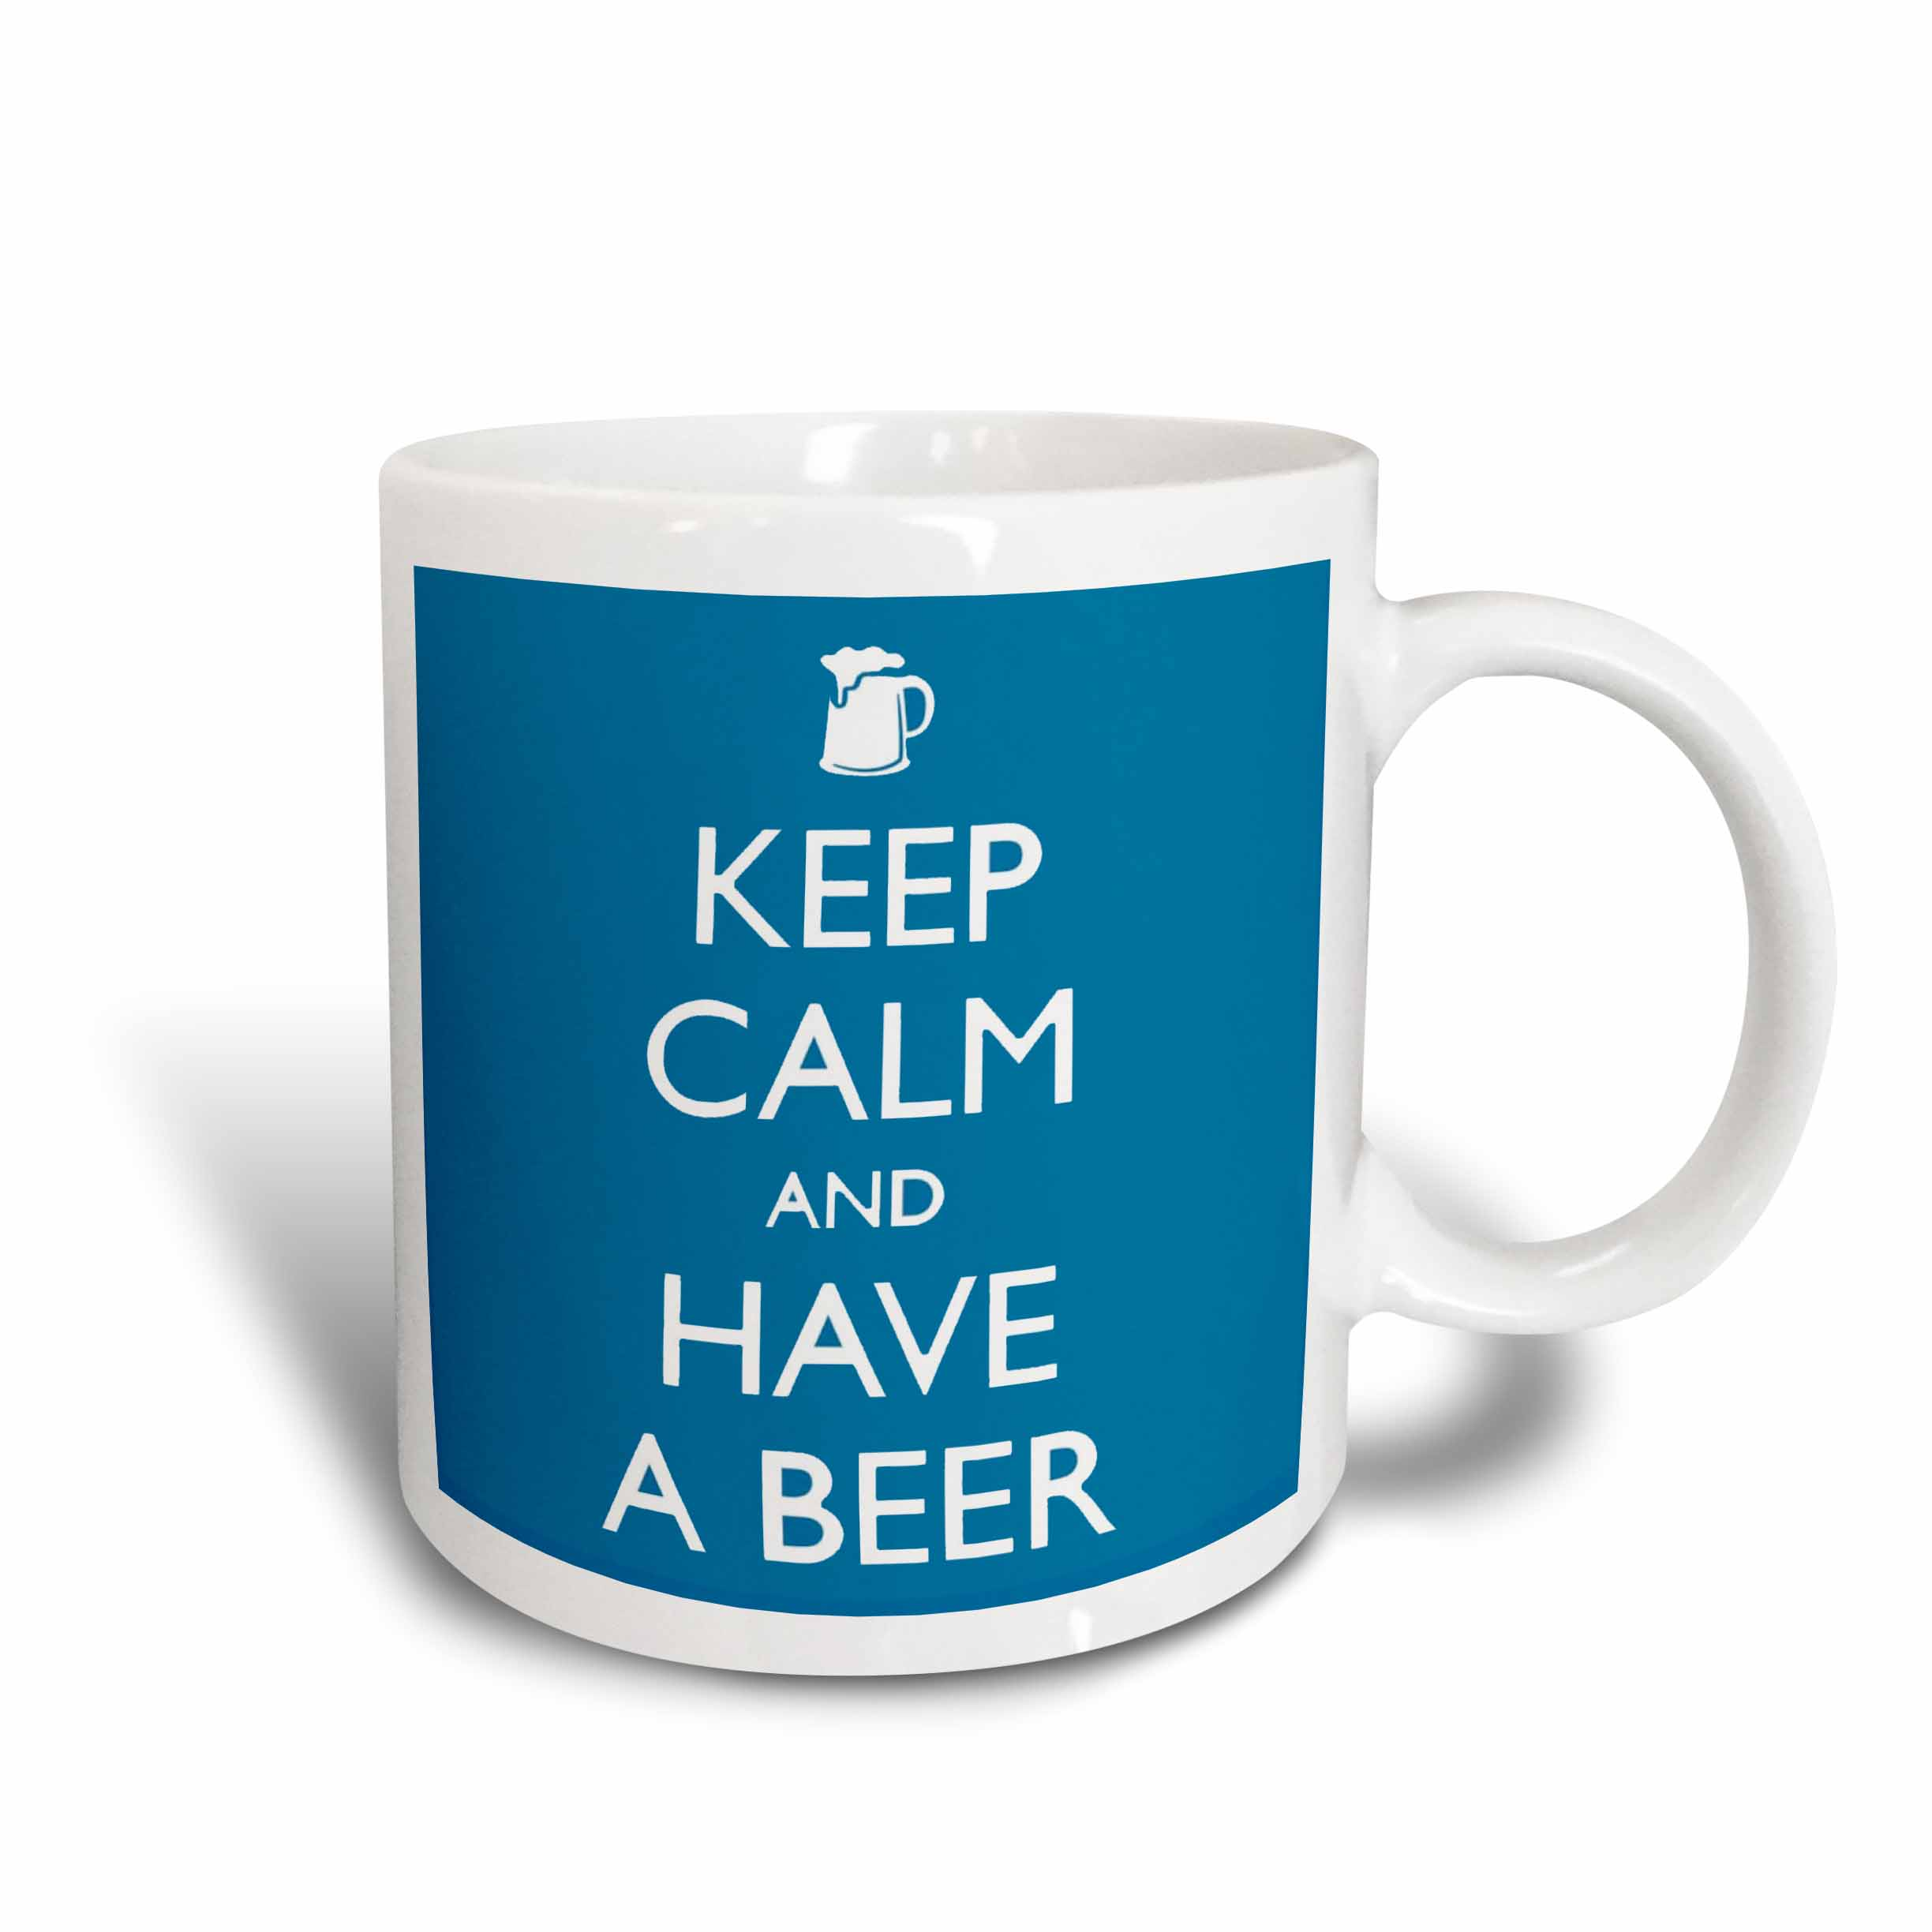 3dRose Keep calm and have a beer. Blue., Ceramic Mug, 11-ounce